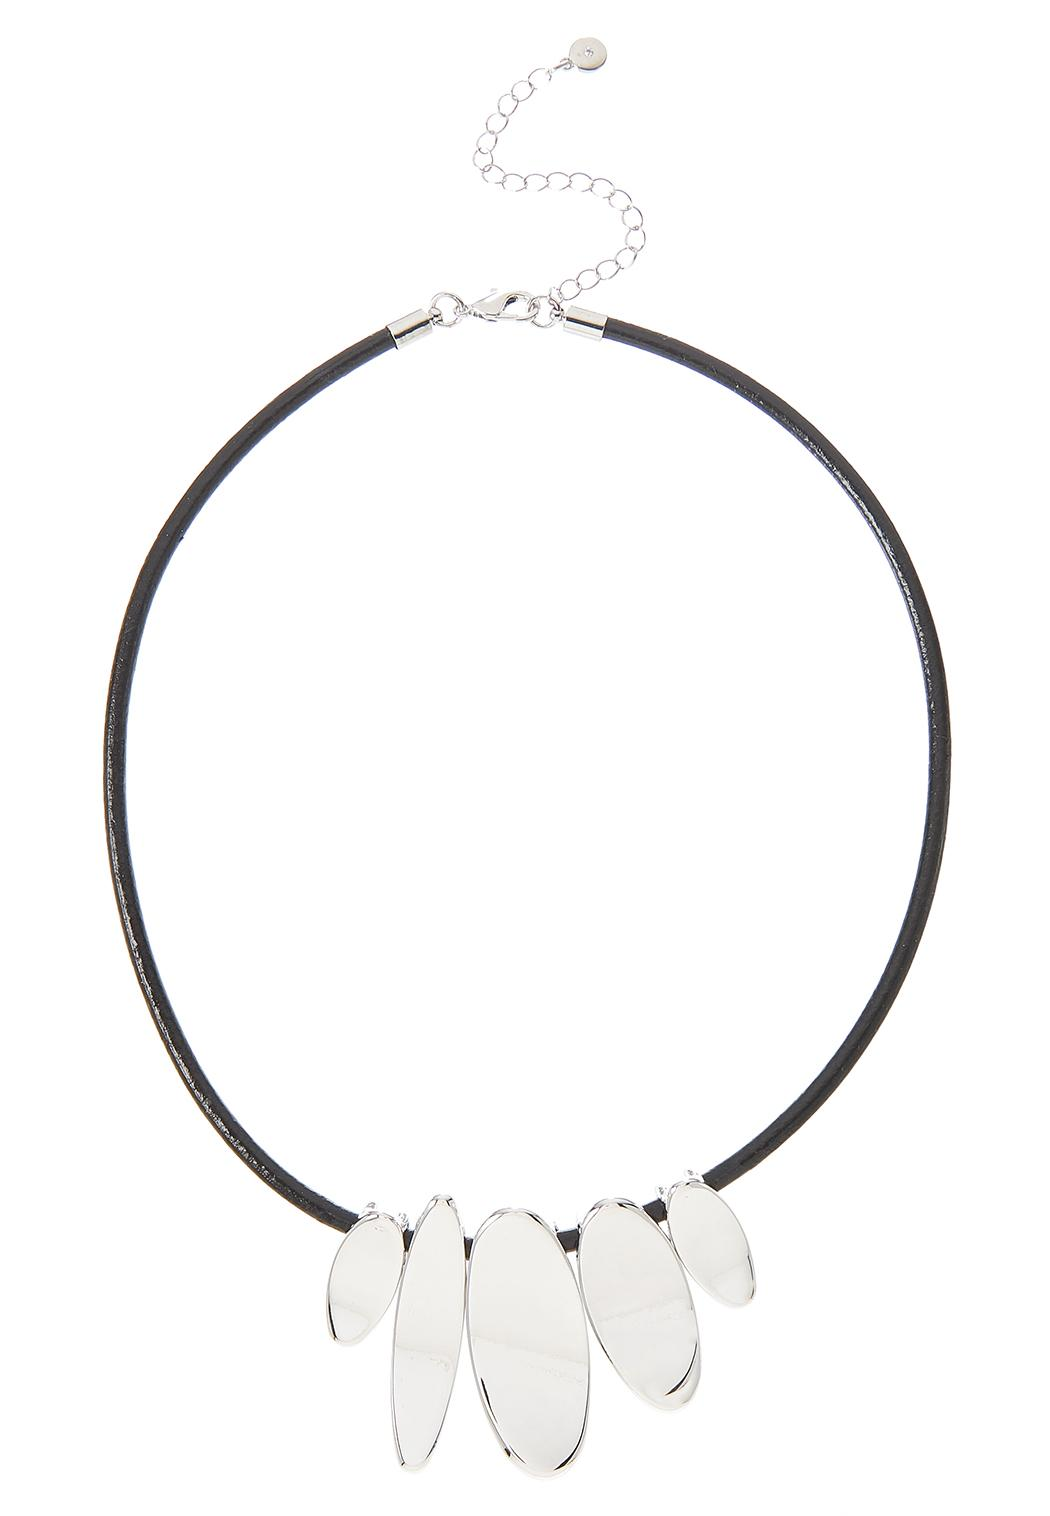 Silver Oval Slider Cord Necklace